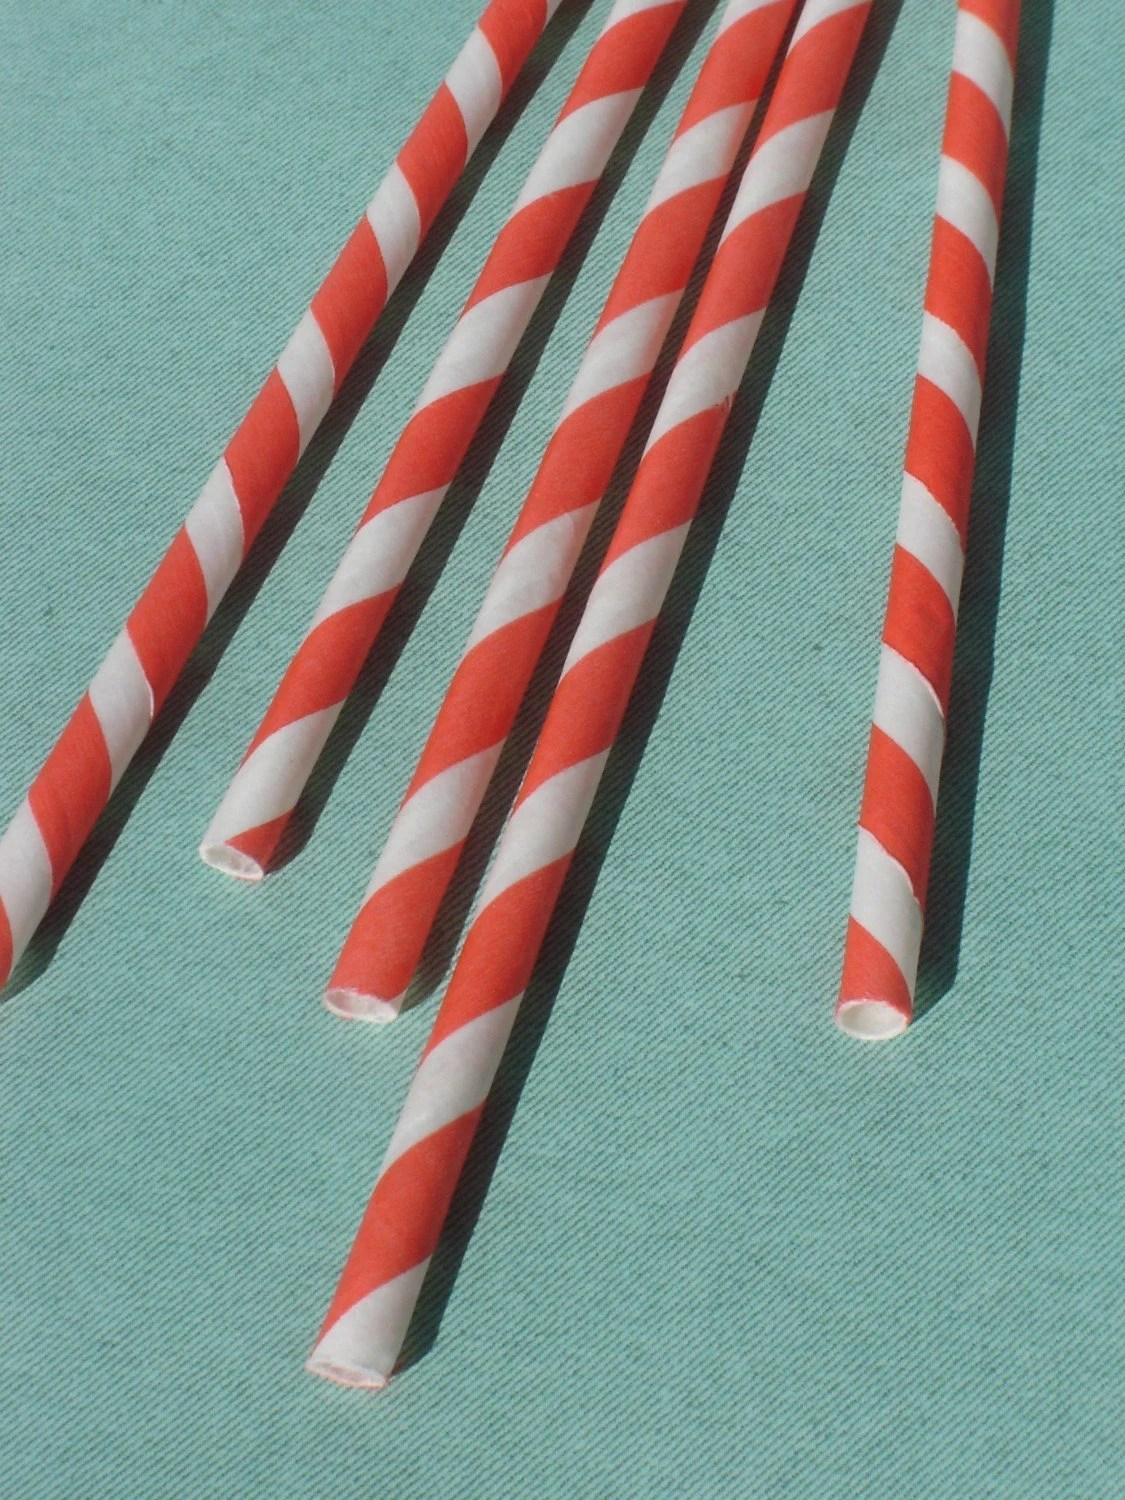 100 striped paper straws - red/white